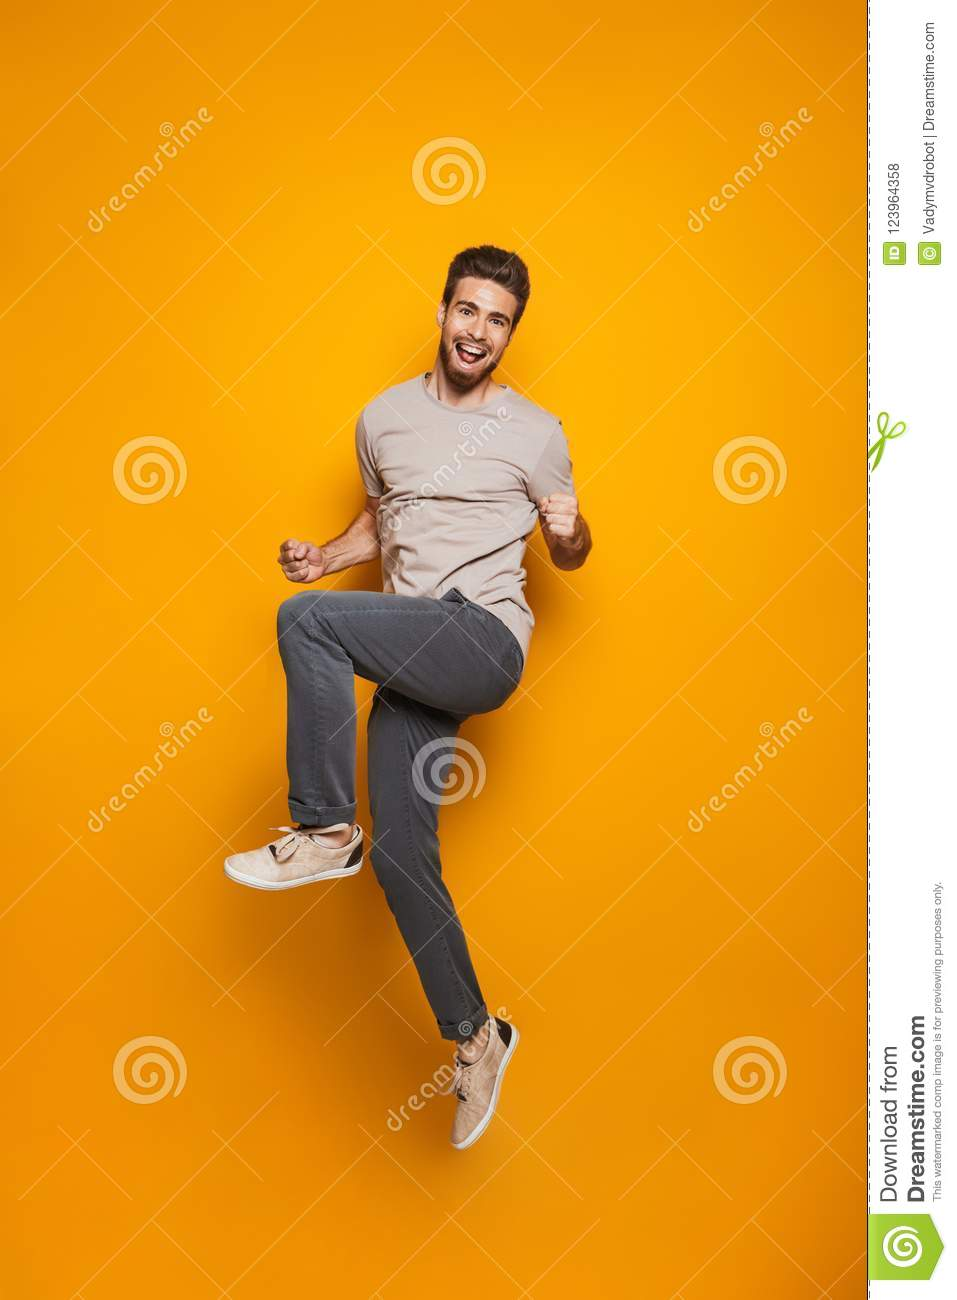 Full length portrait of a cheerful young man jumping